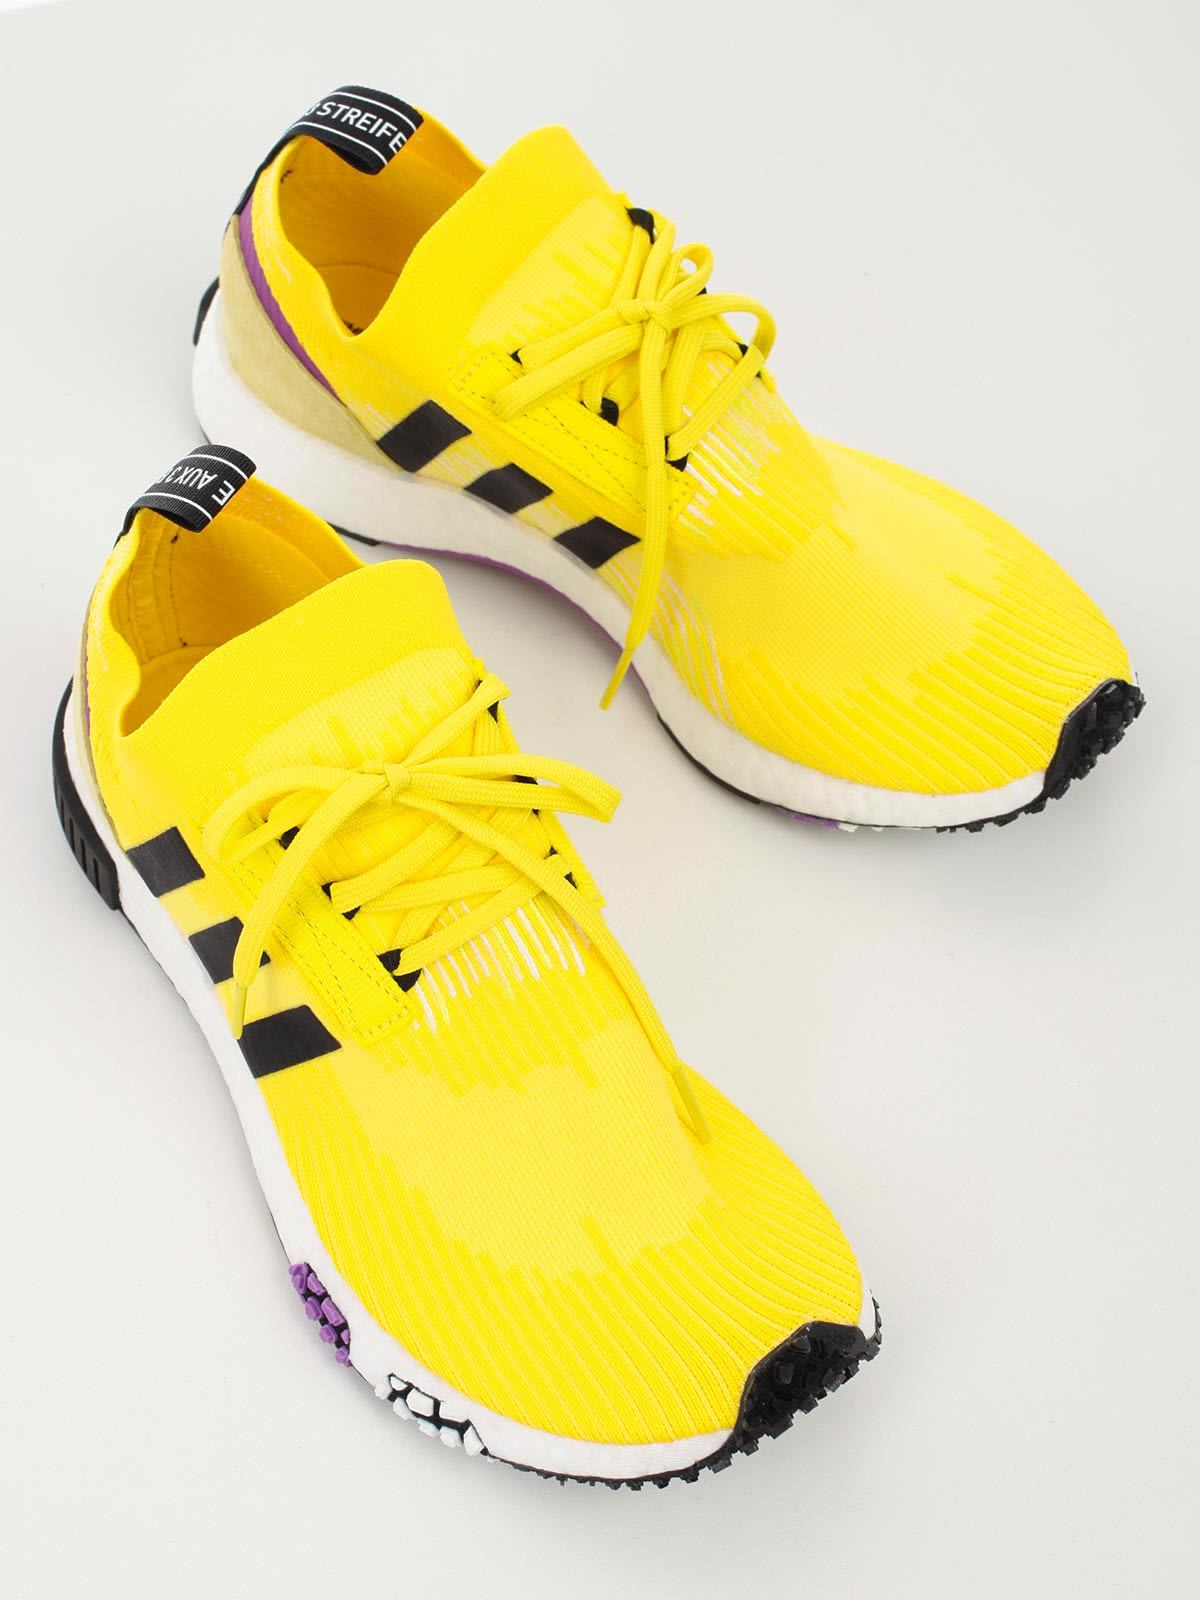 new product e8898 d596c ... Adidas Originals Nmd Racer Pk Sneakers - Yellow Black Shopur